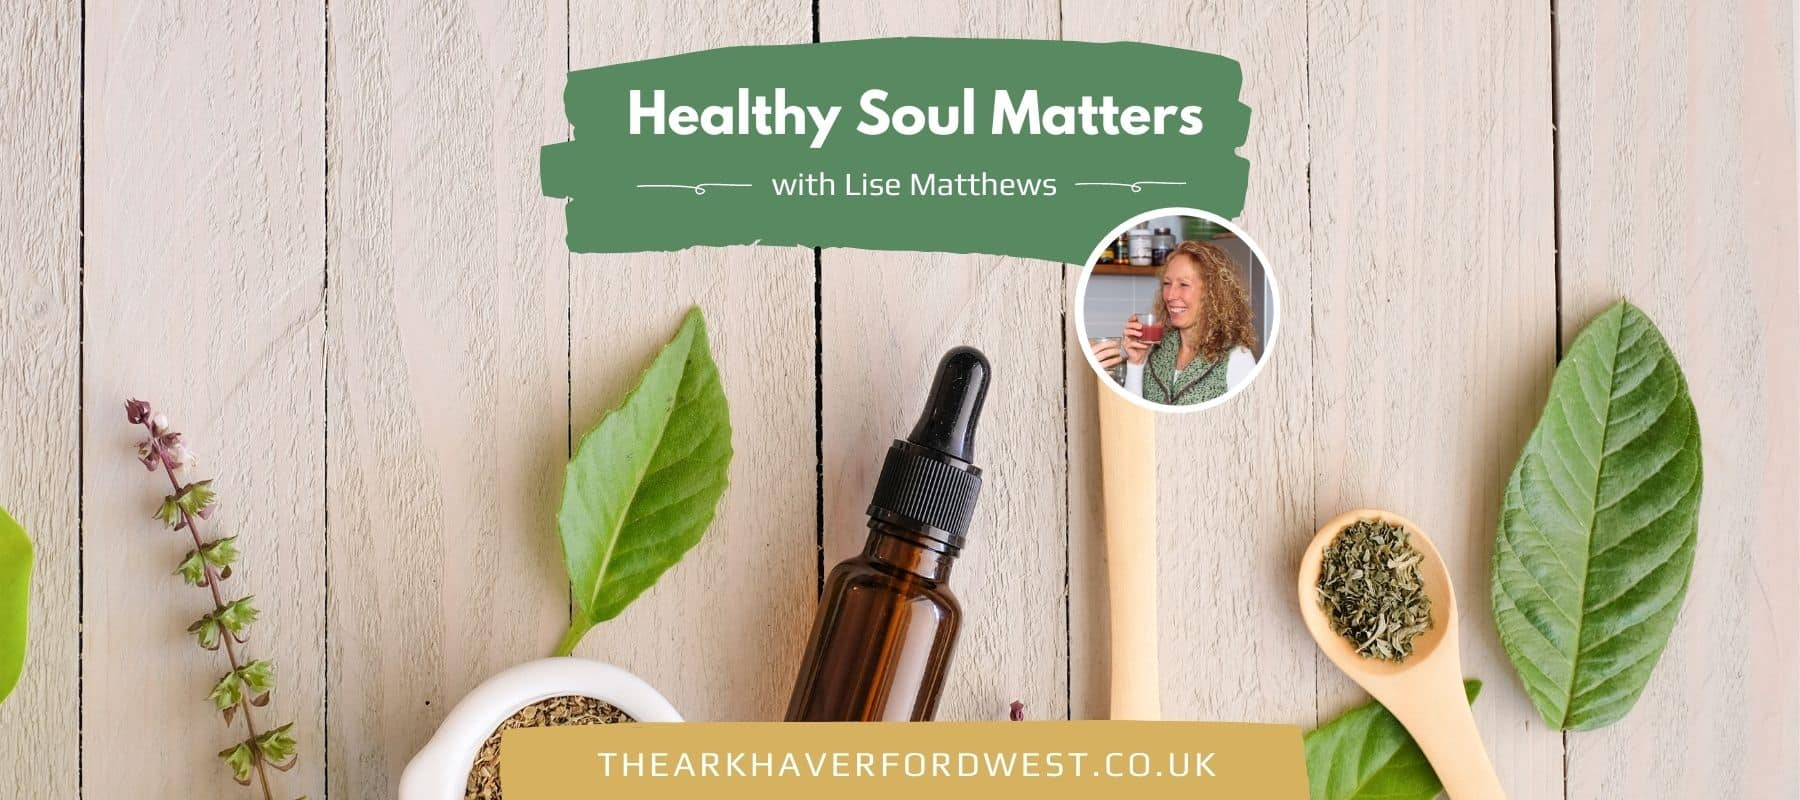 Healthy Soul Matters Podcast - The Ark - Haverfordwest